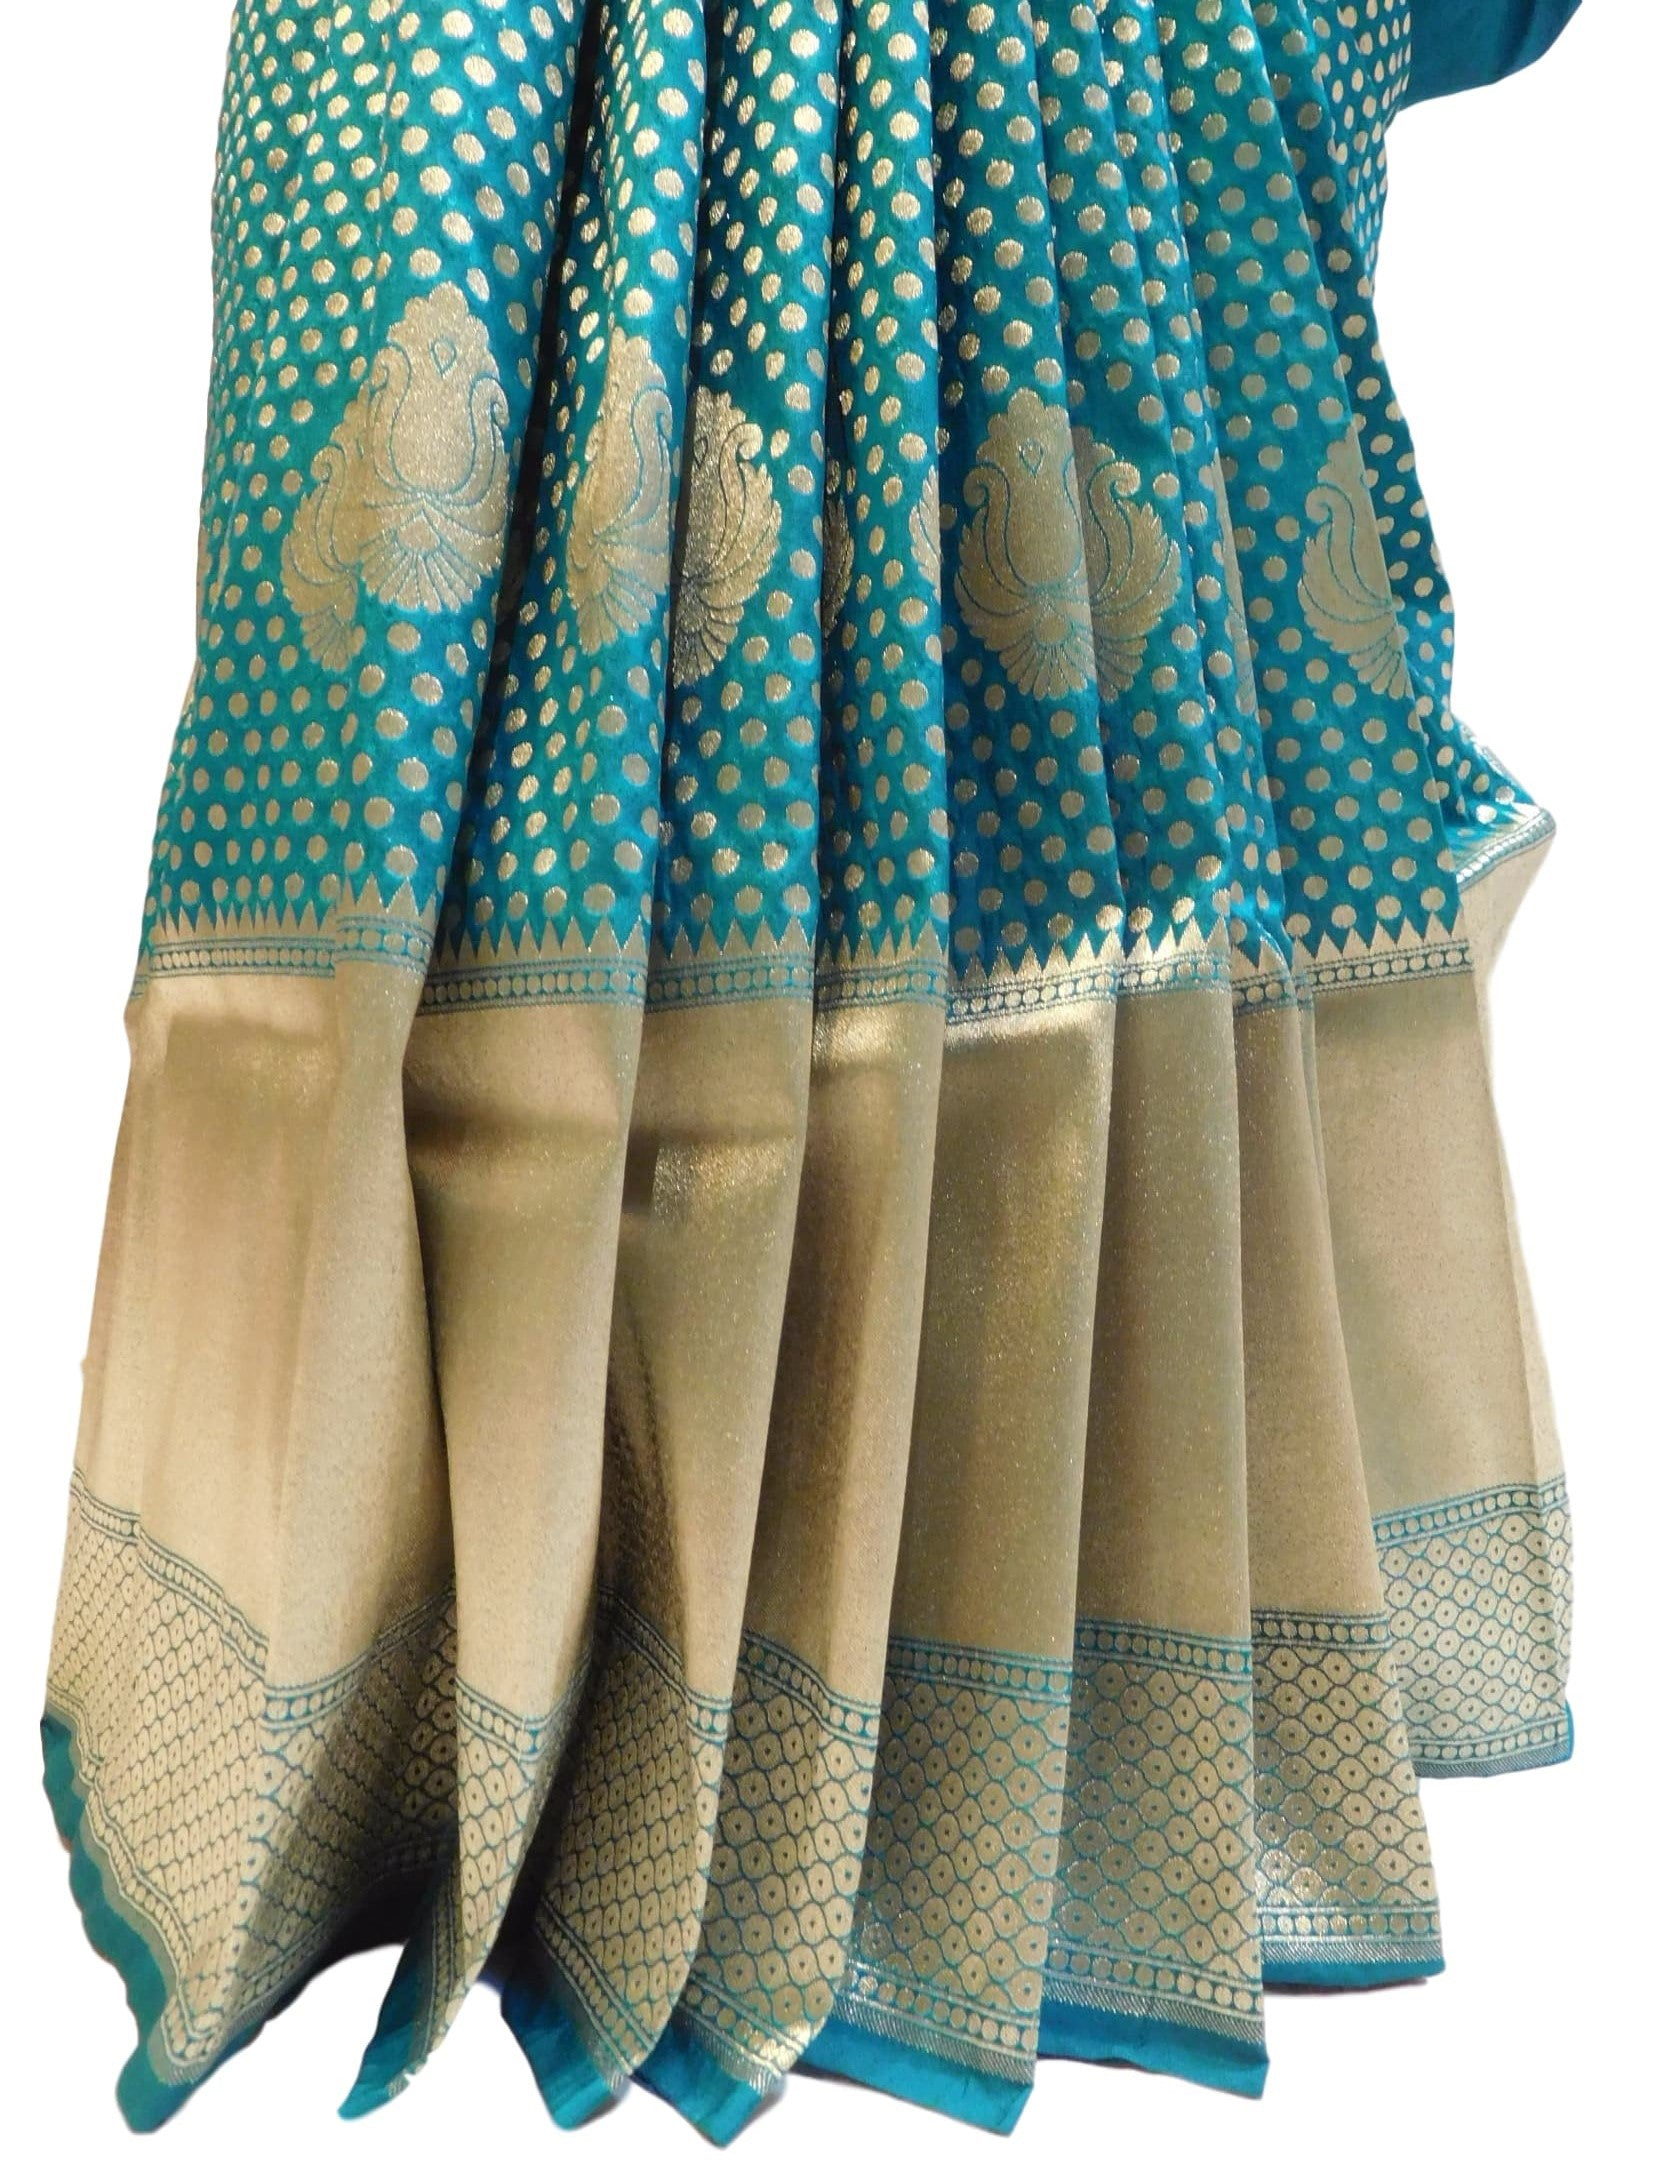 Sea Green (Rama Green) Traditional Designer Bridal Hand Weaven Pure Benarasi Zari Work Saree Sari With Blouse